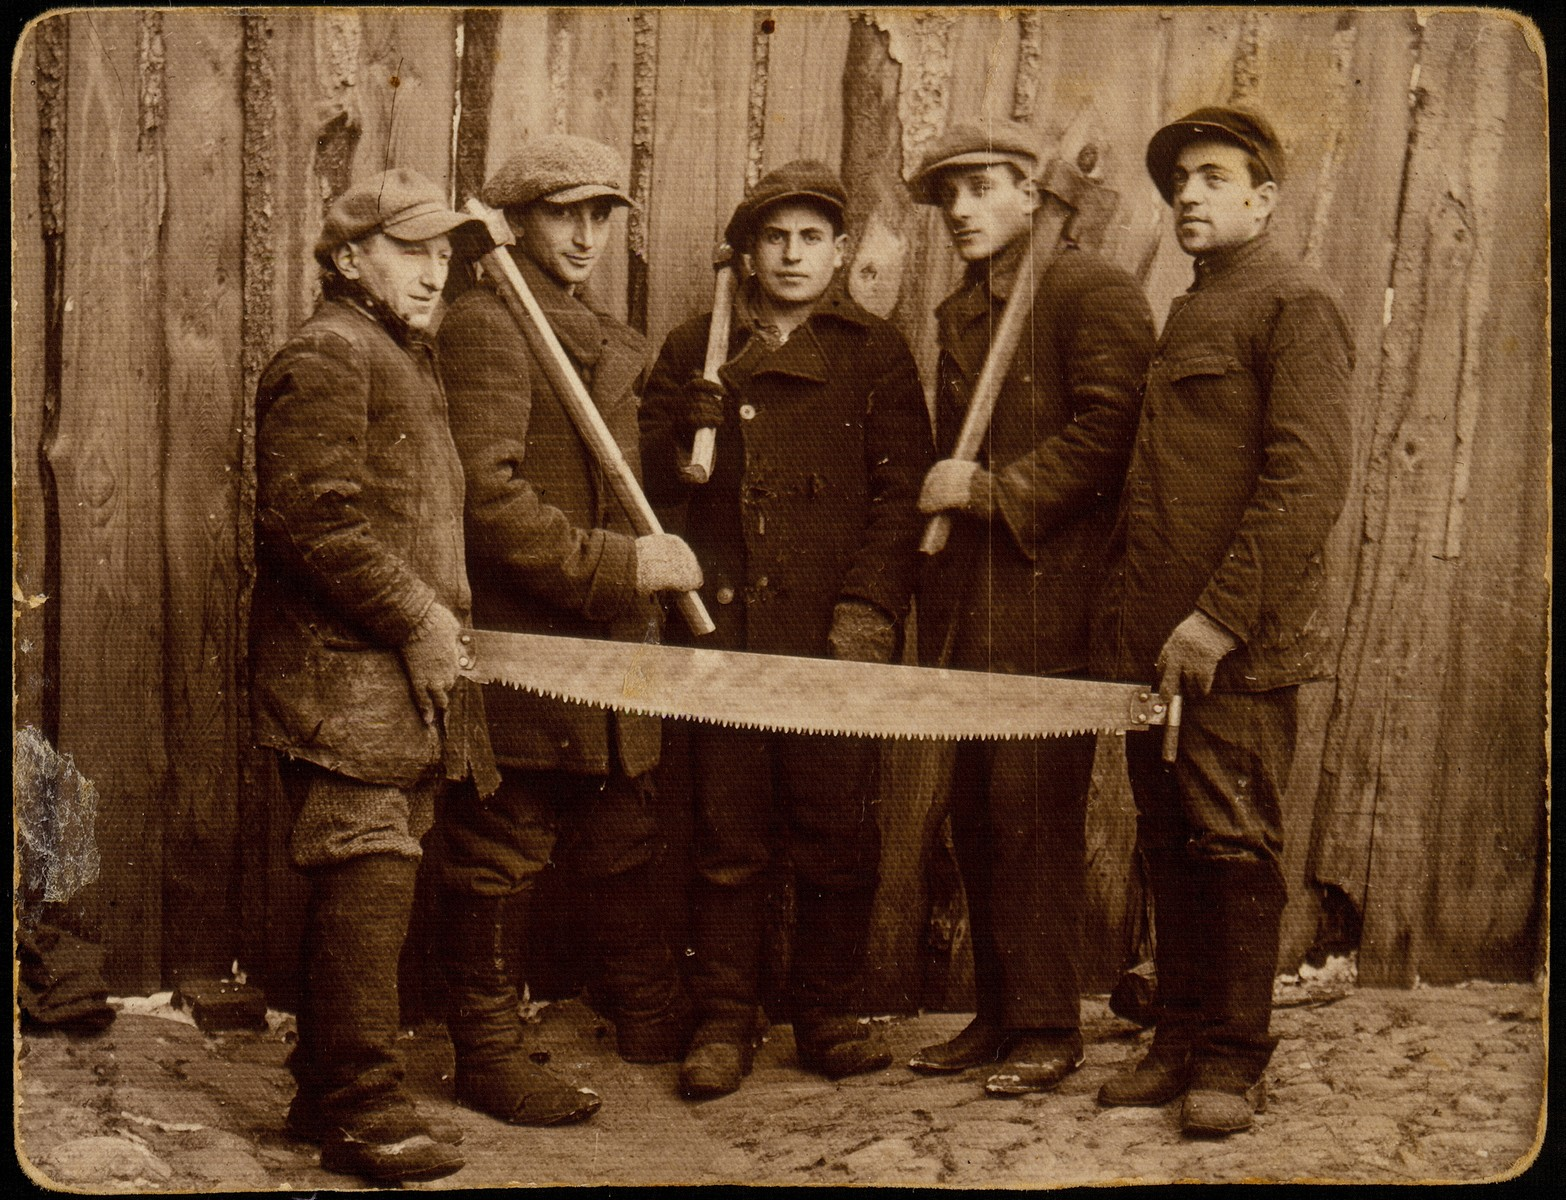 Five young Jewish men who are members of a kibbutz hachshara (Zionist collective) pose holding tools at a logging company in Oczmiana, where they are working to learn the trade and finance their collective.  Among those pictured is Yehiel Blacharowicz (left) from Eisiskes.  He was killed by the Germans during the September 1941 mass shooting action in Eisiskes.